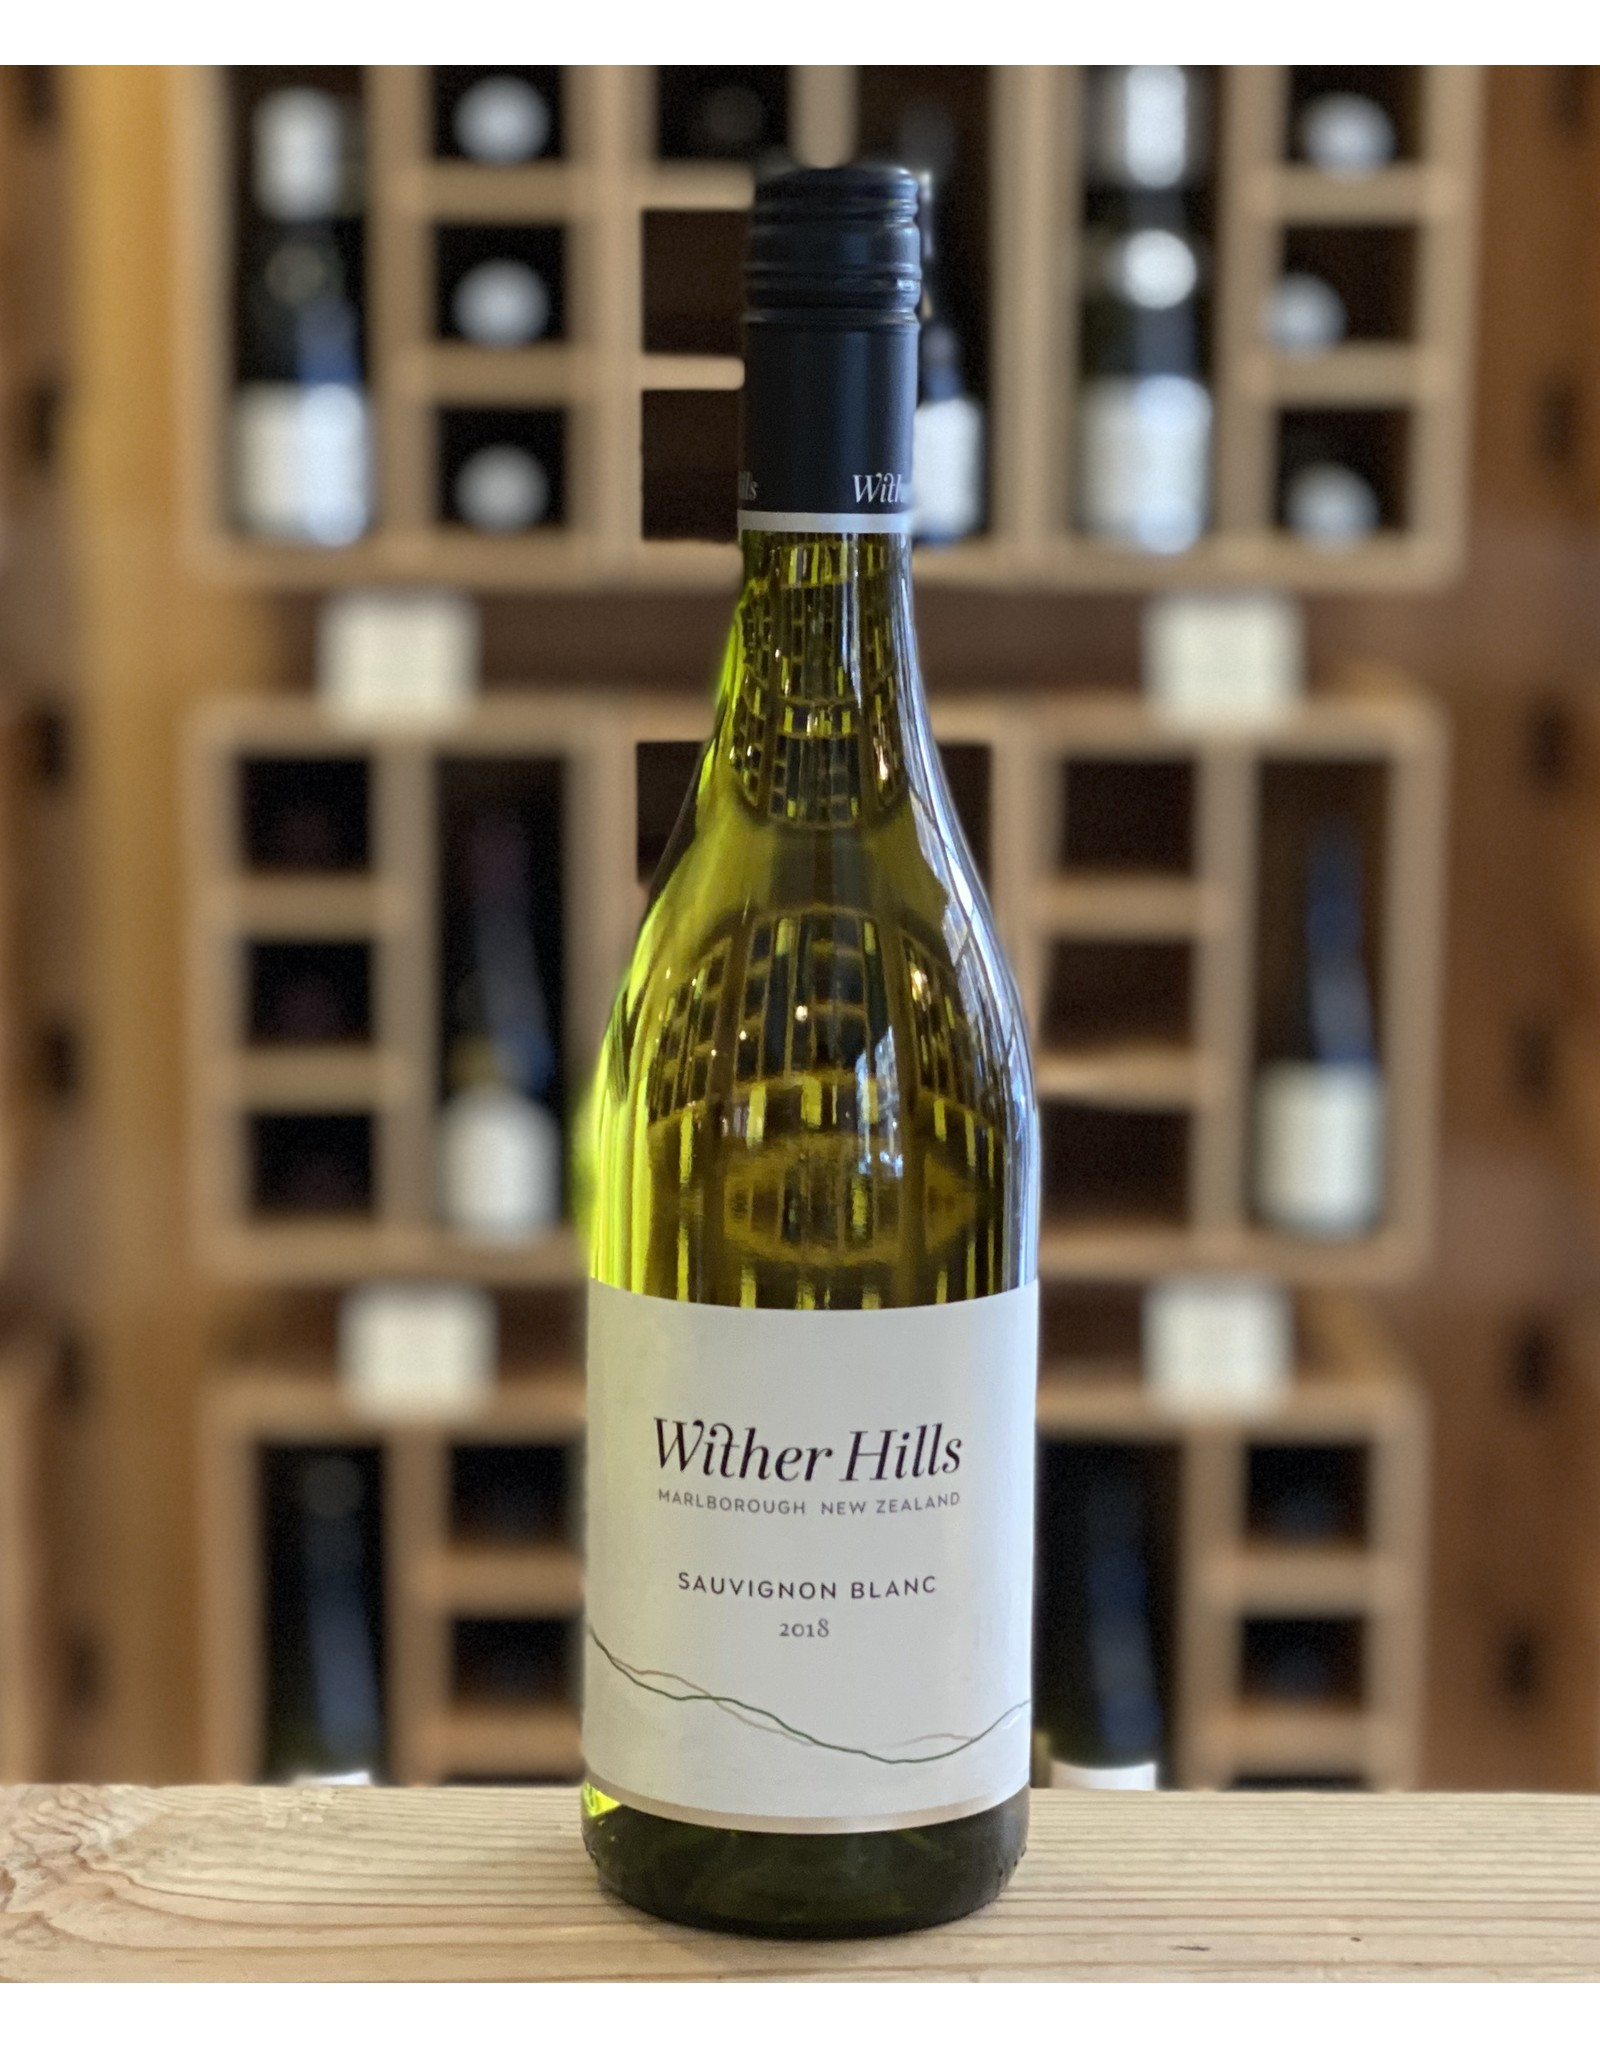 New Zealand Wither Hills Sauvignon Blanc 2020 - Marlborough, New Zealand